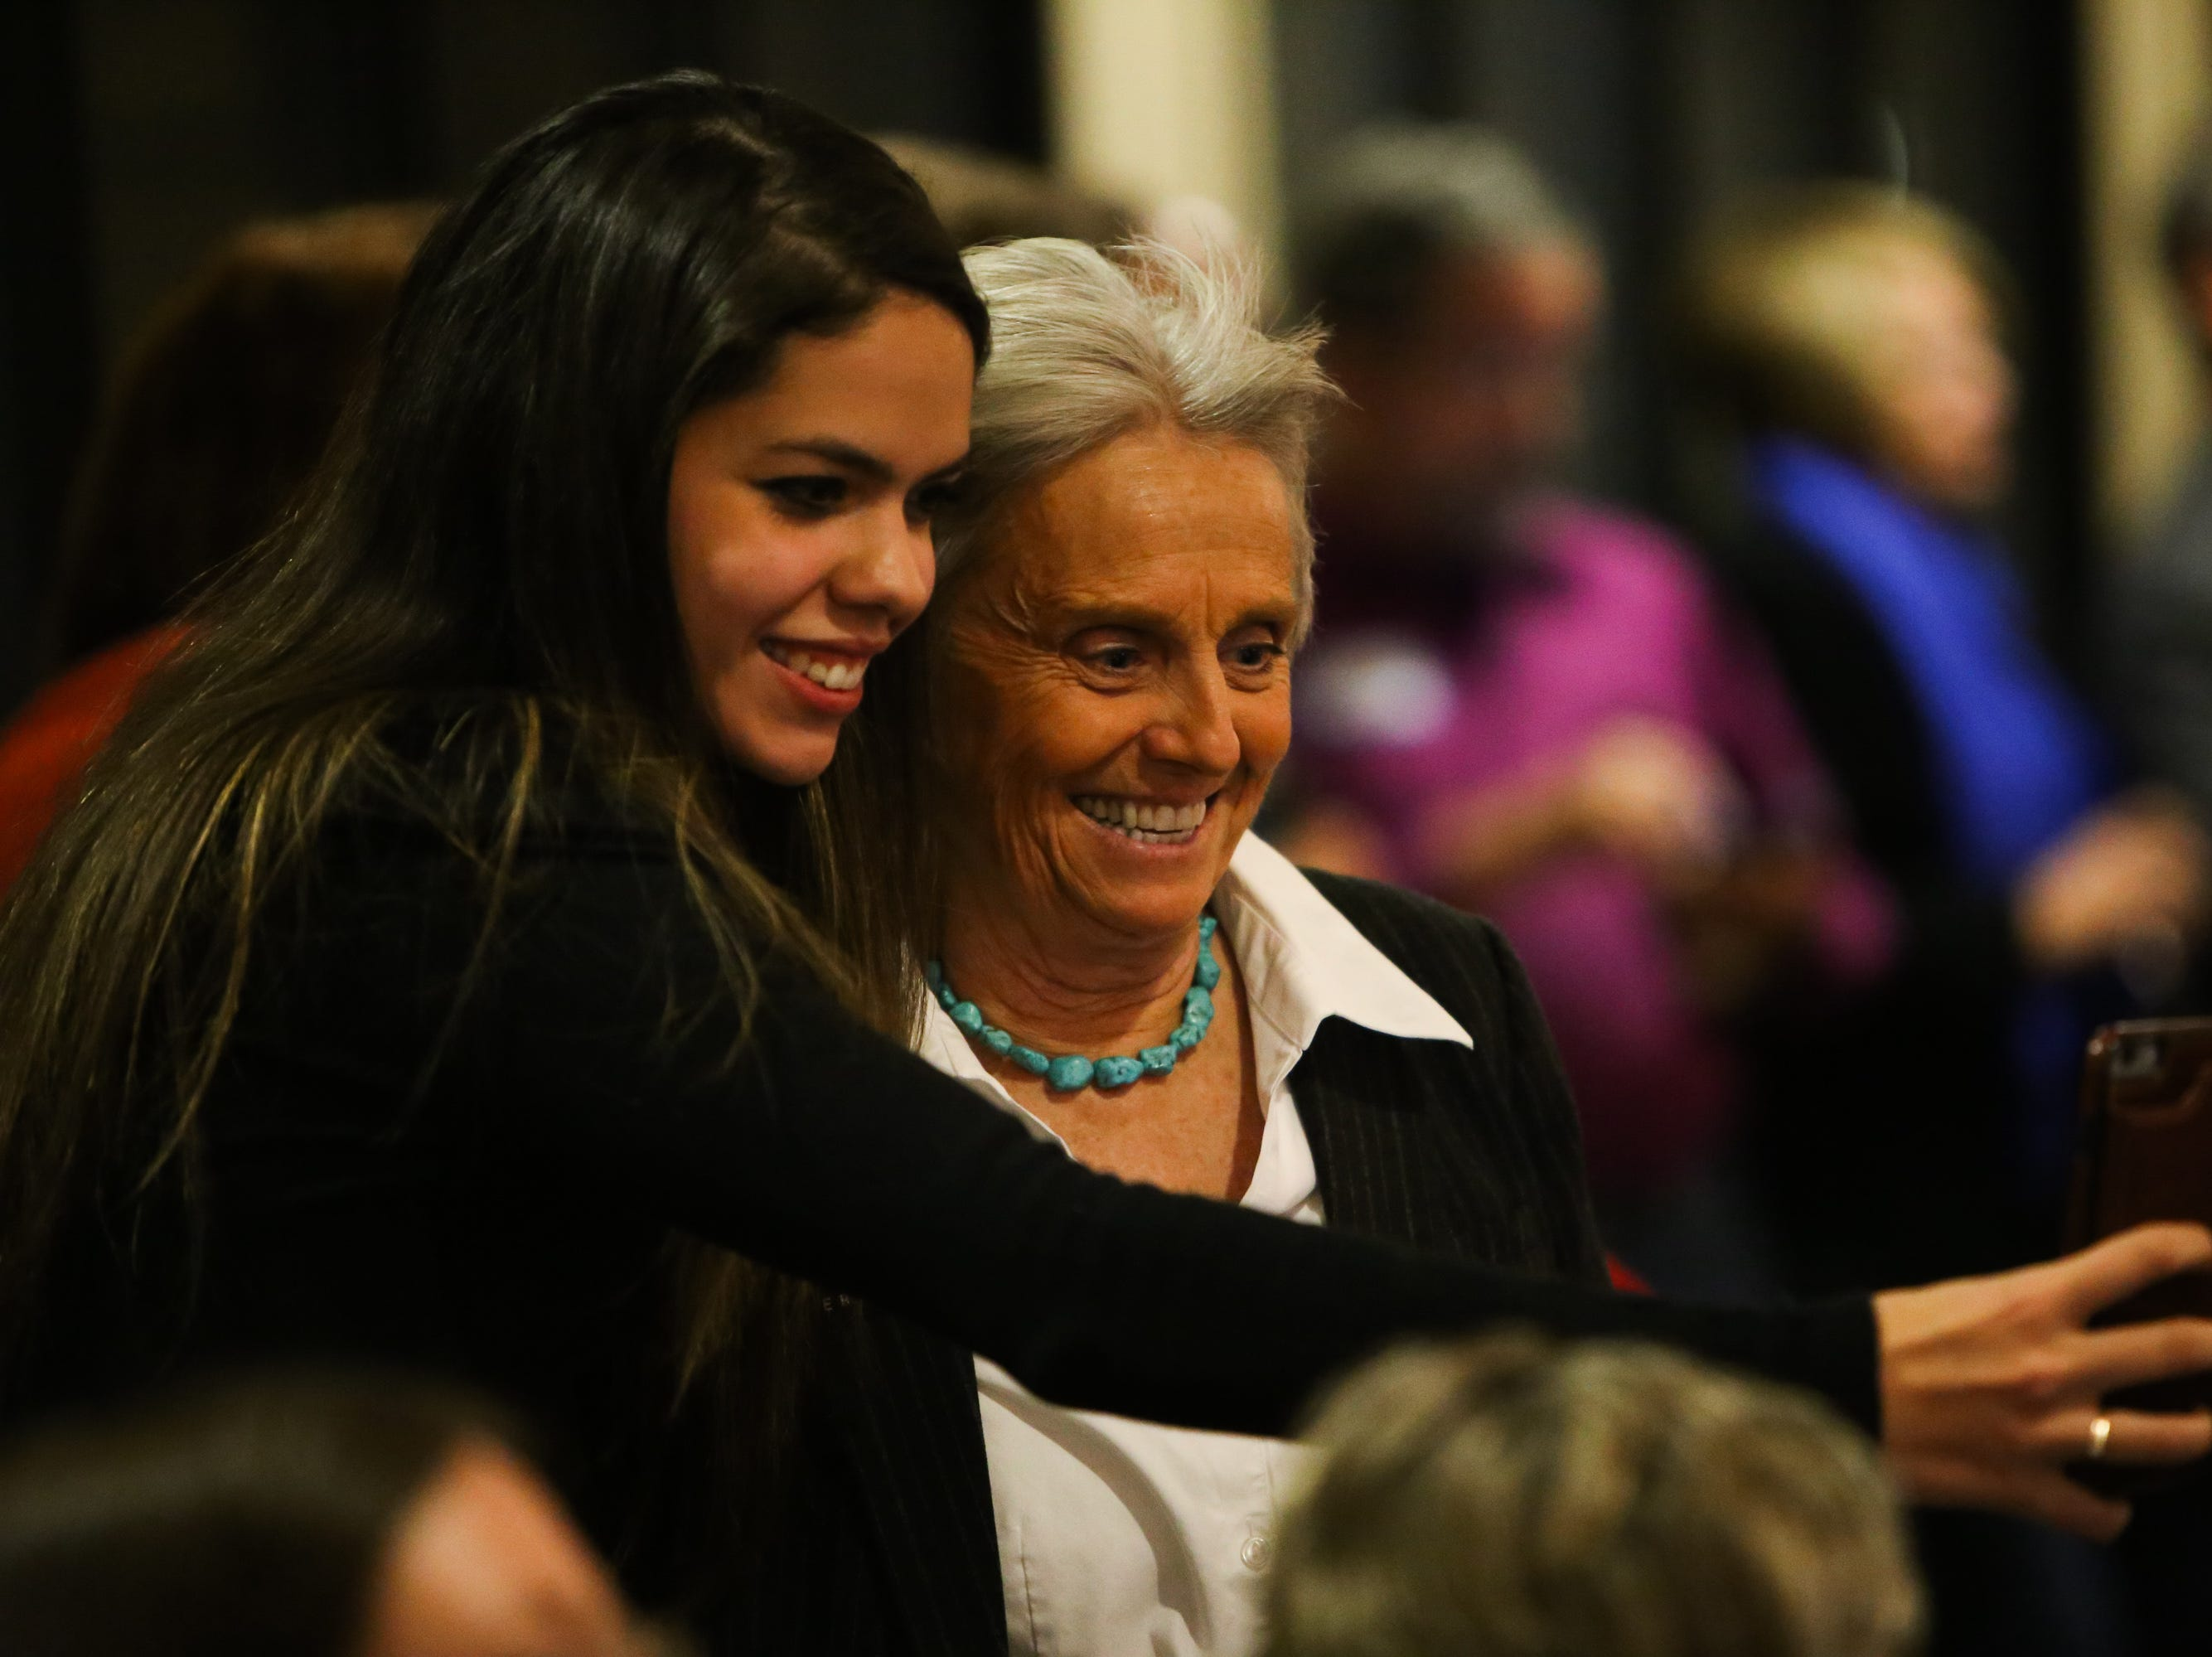 Ximena Meissgeier takes a selfie with Rep. Joann Ginal during the Larimer County Democrats Watch Party on Tuesday at the Fort Collins Marriott.